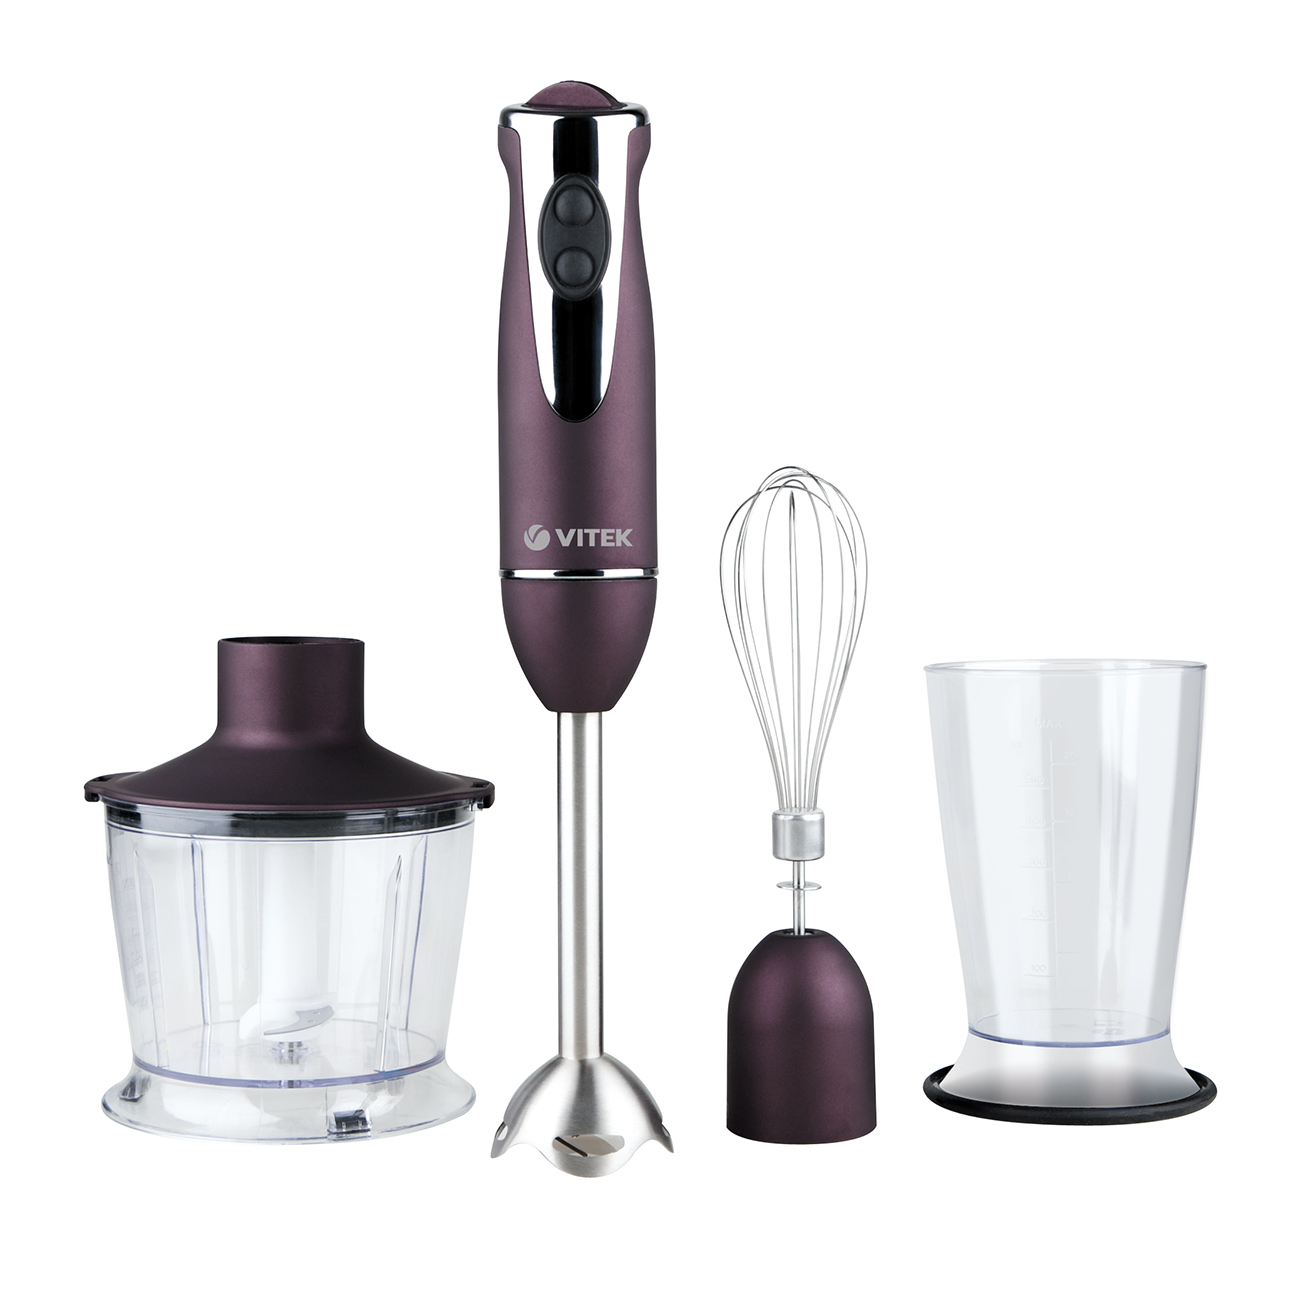 Immersion blender Vitek VT-1468 BD блендер vitek vt 1468 bd